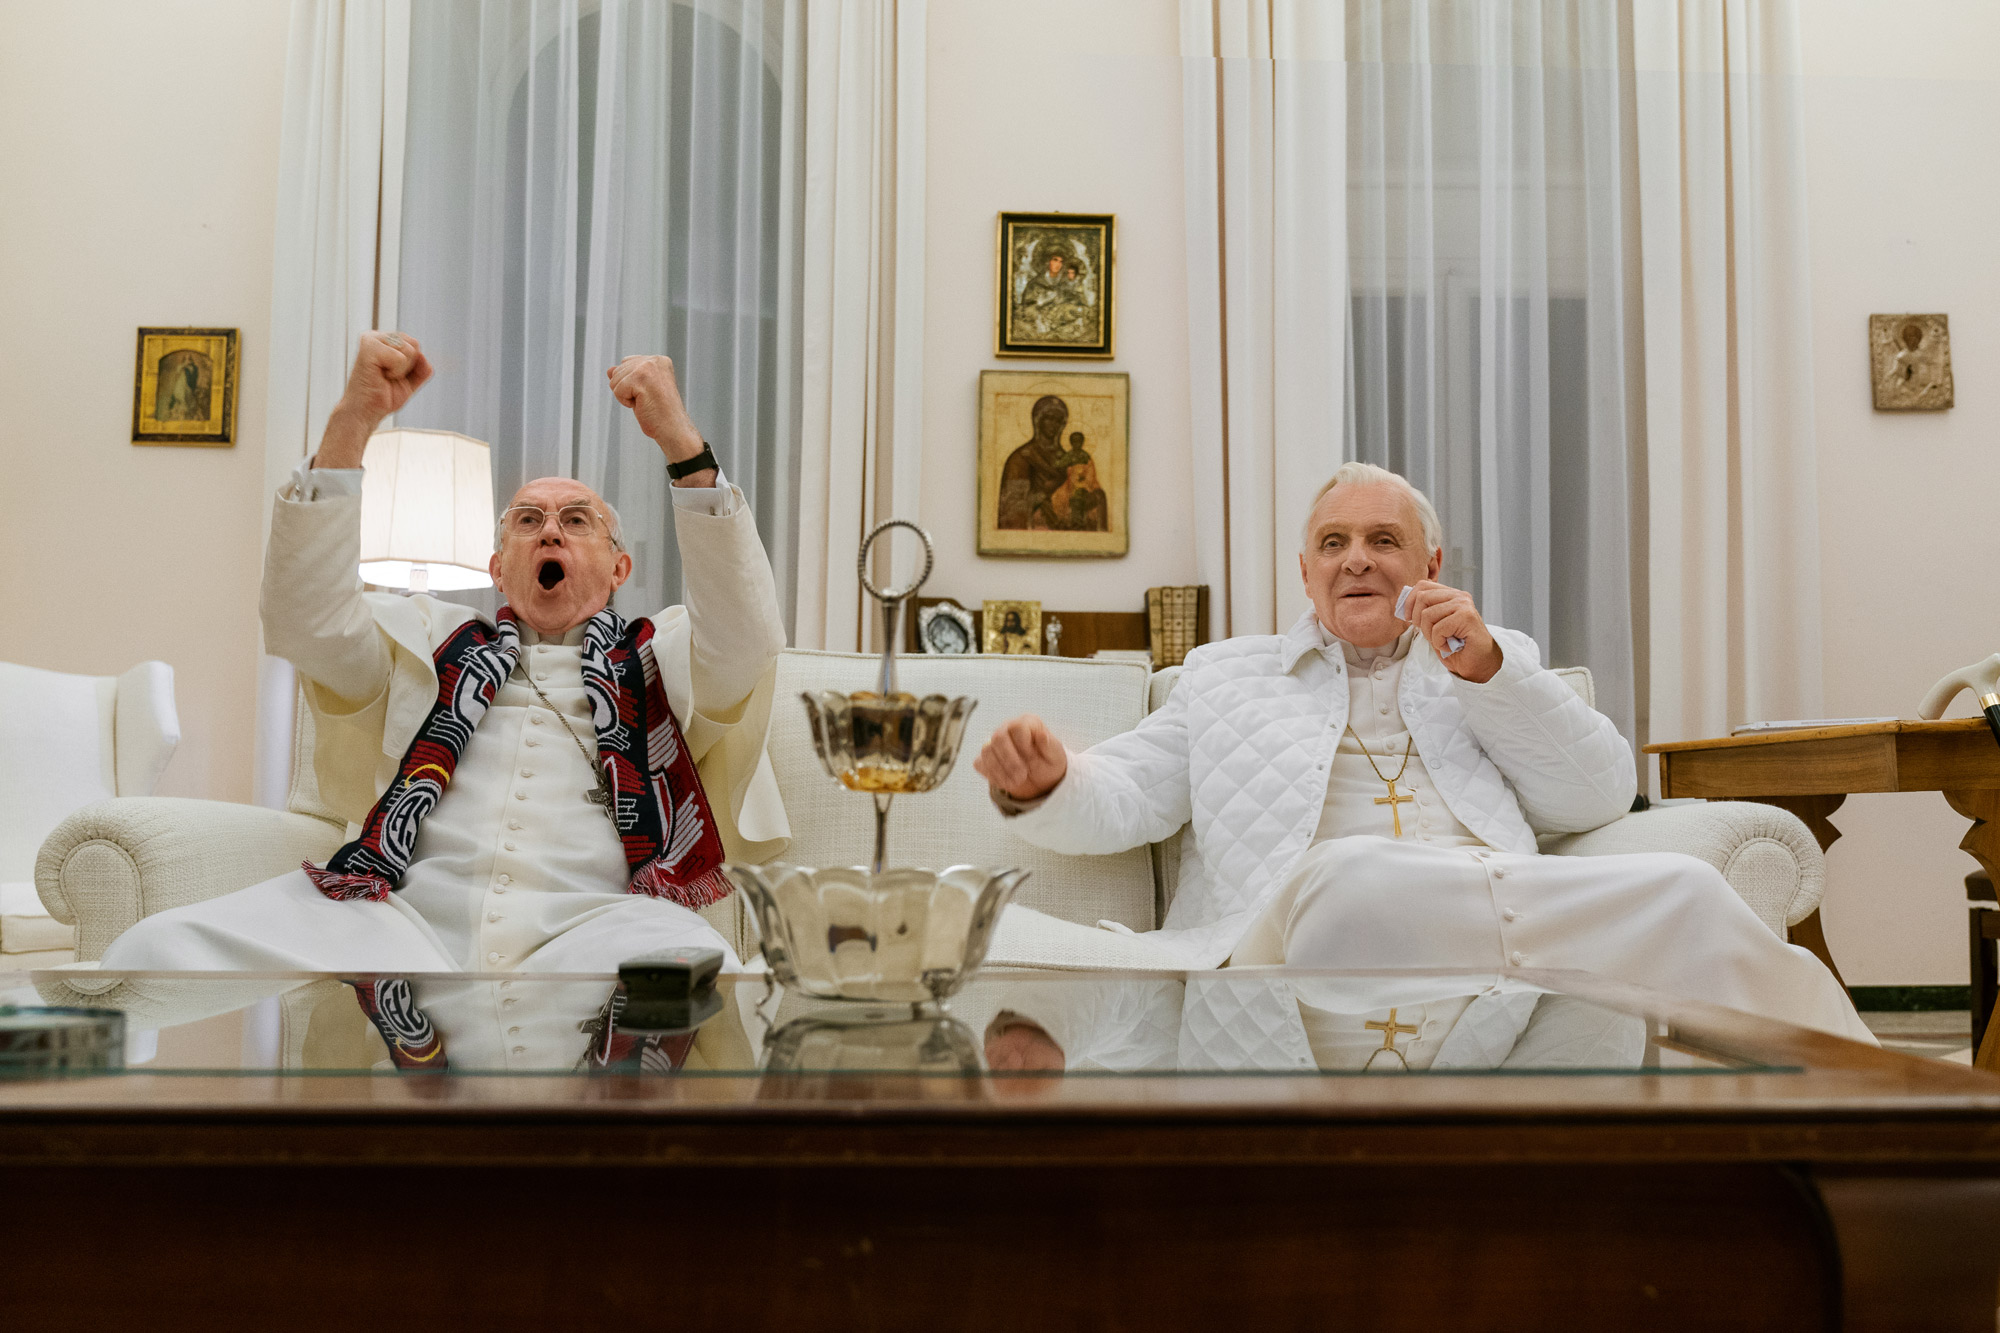 'The Two Popes' Review: A Face-off of Biblical Proportions